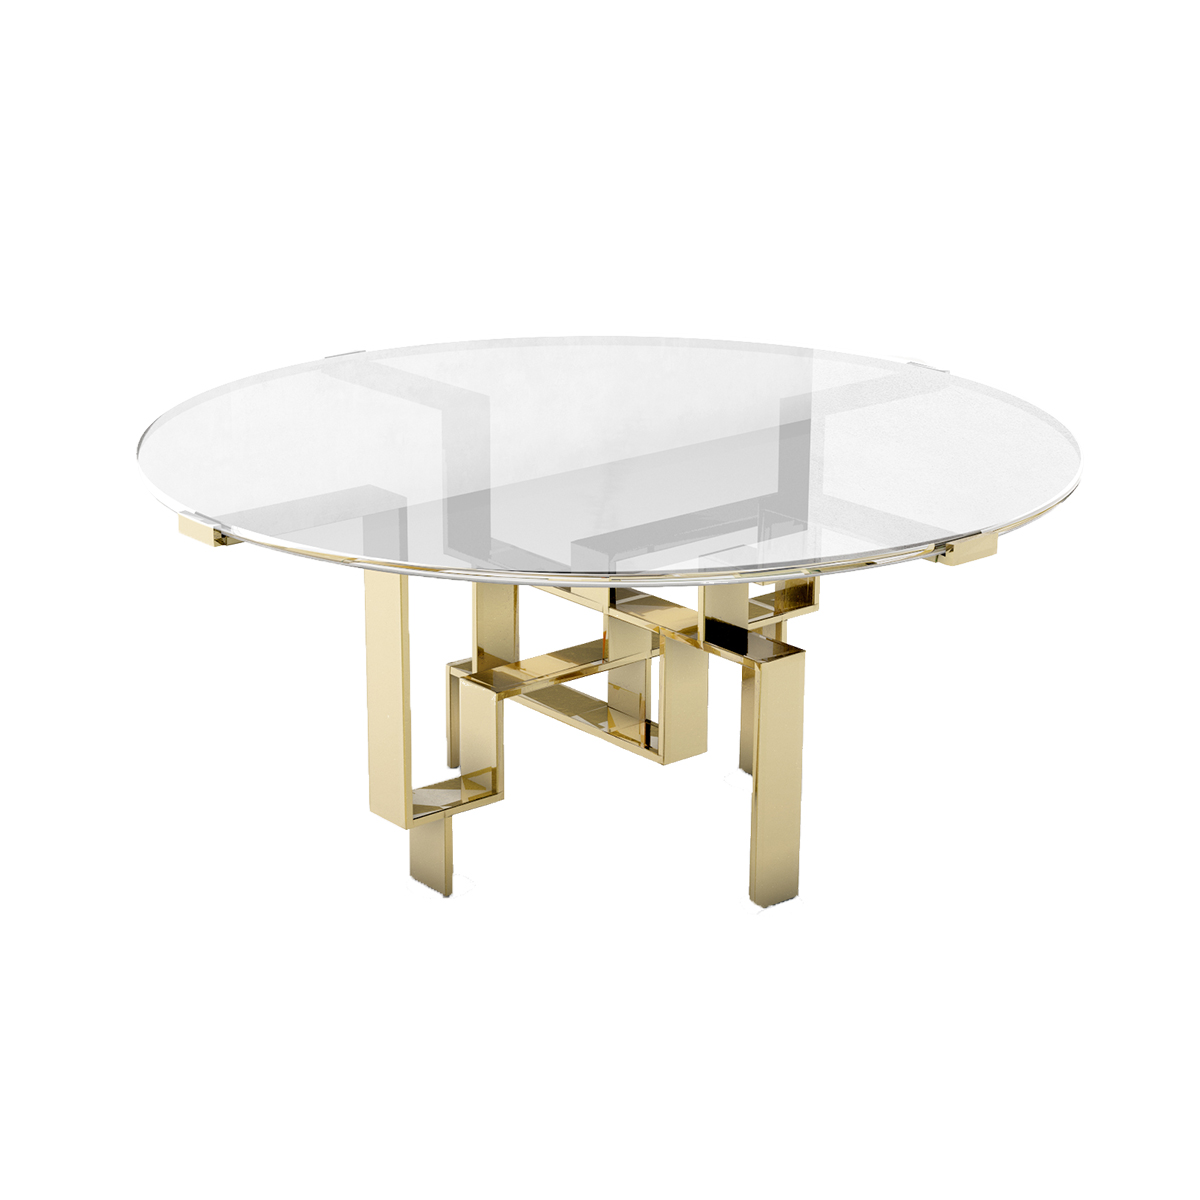 "Metropolis Round Table   Glass topped dining table with solid brass geometric base. 60""diameter x 29.5"""